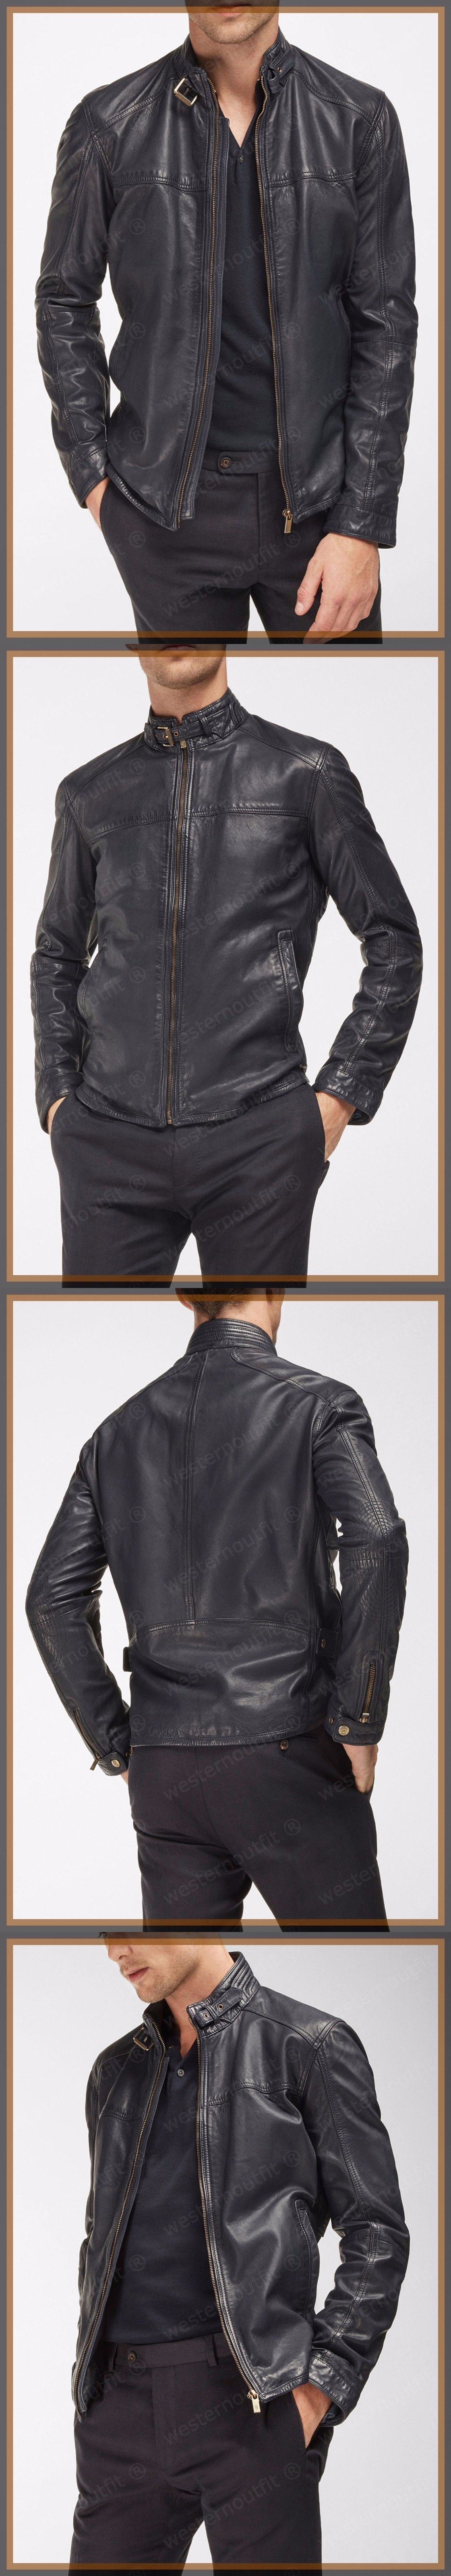 Men Coats And Jackets: New Mens Genuine Lambskin Leather Jacket Black Slim Fit Motorcycle Jacket BUY IT NOW ONLY: $111.91